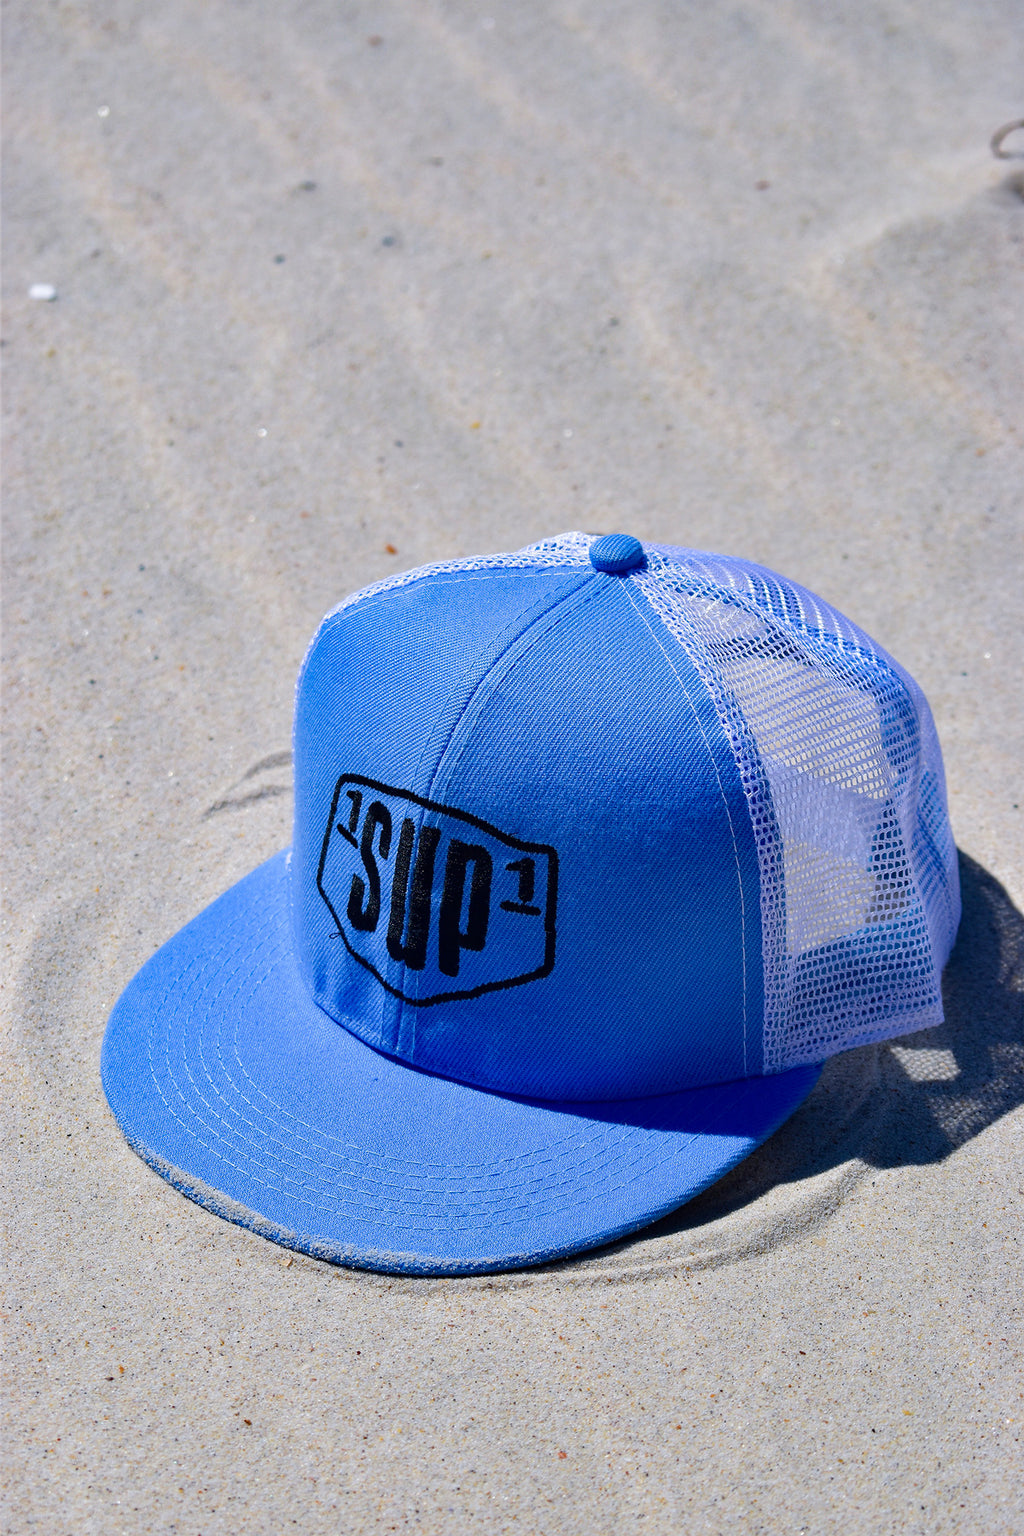 1SUP1 Trucker Cap (Blue)